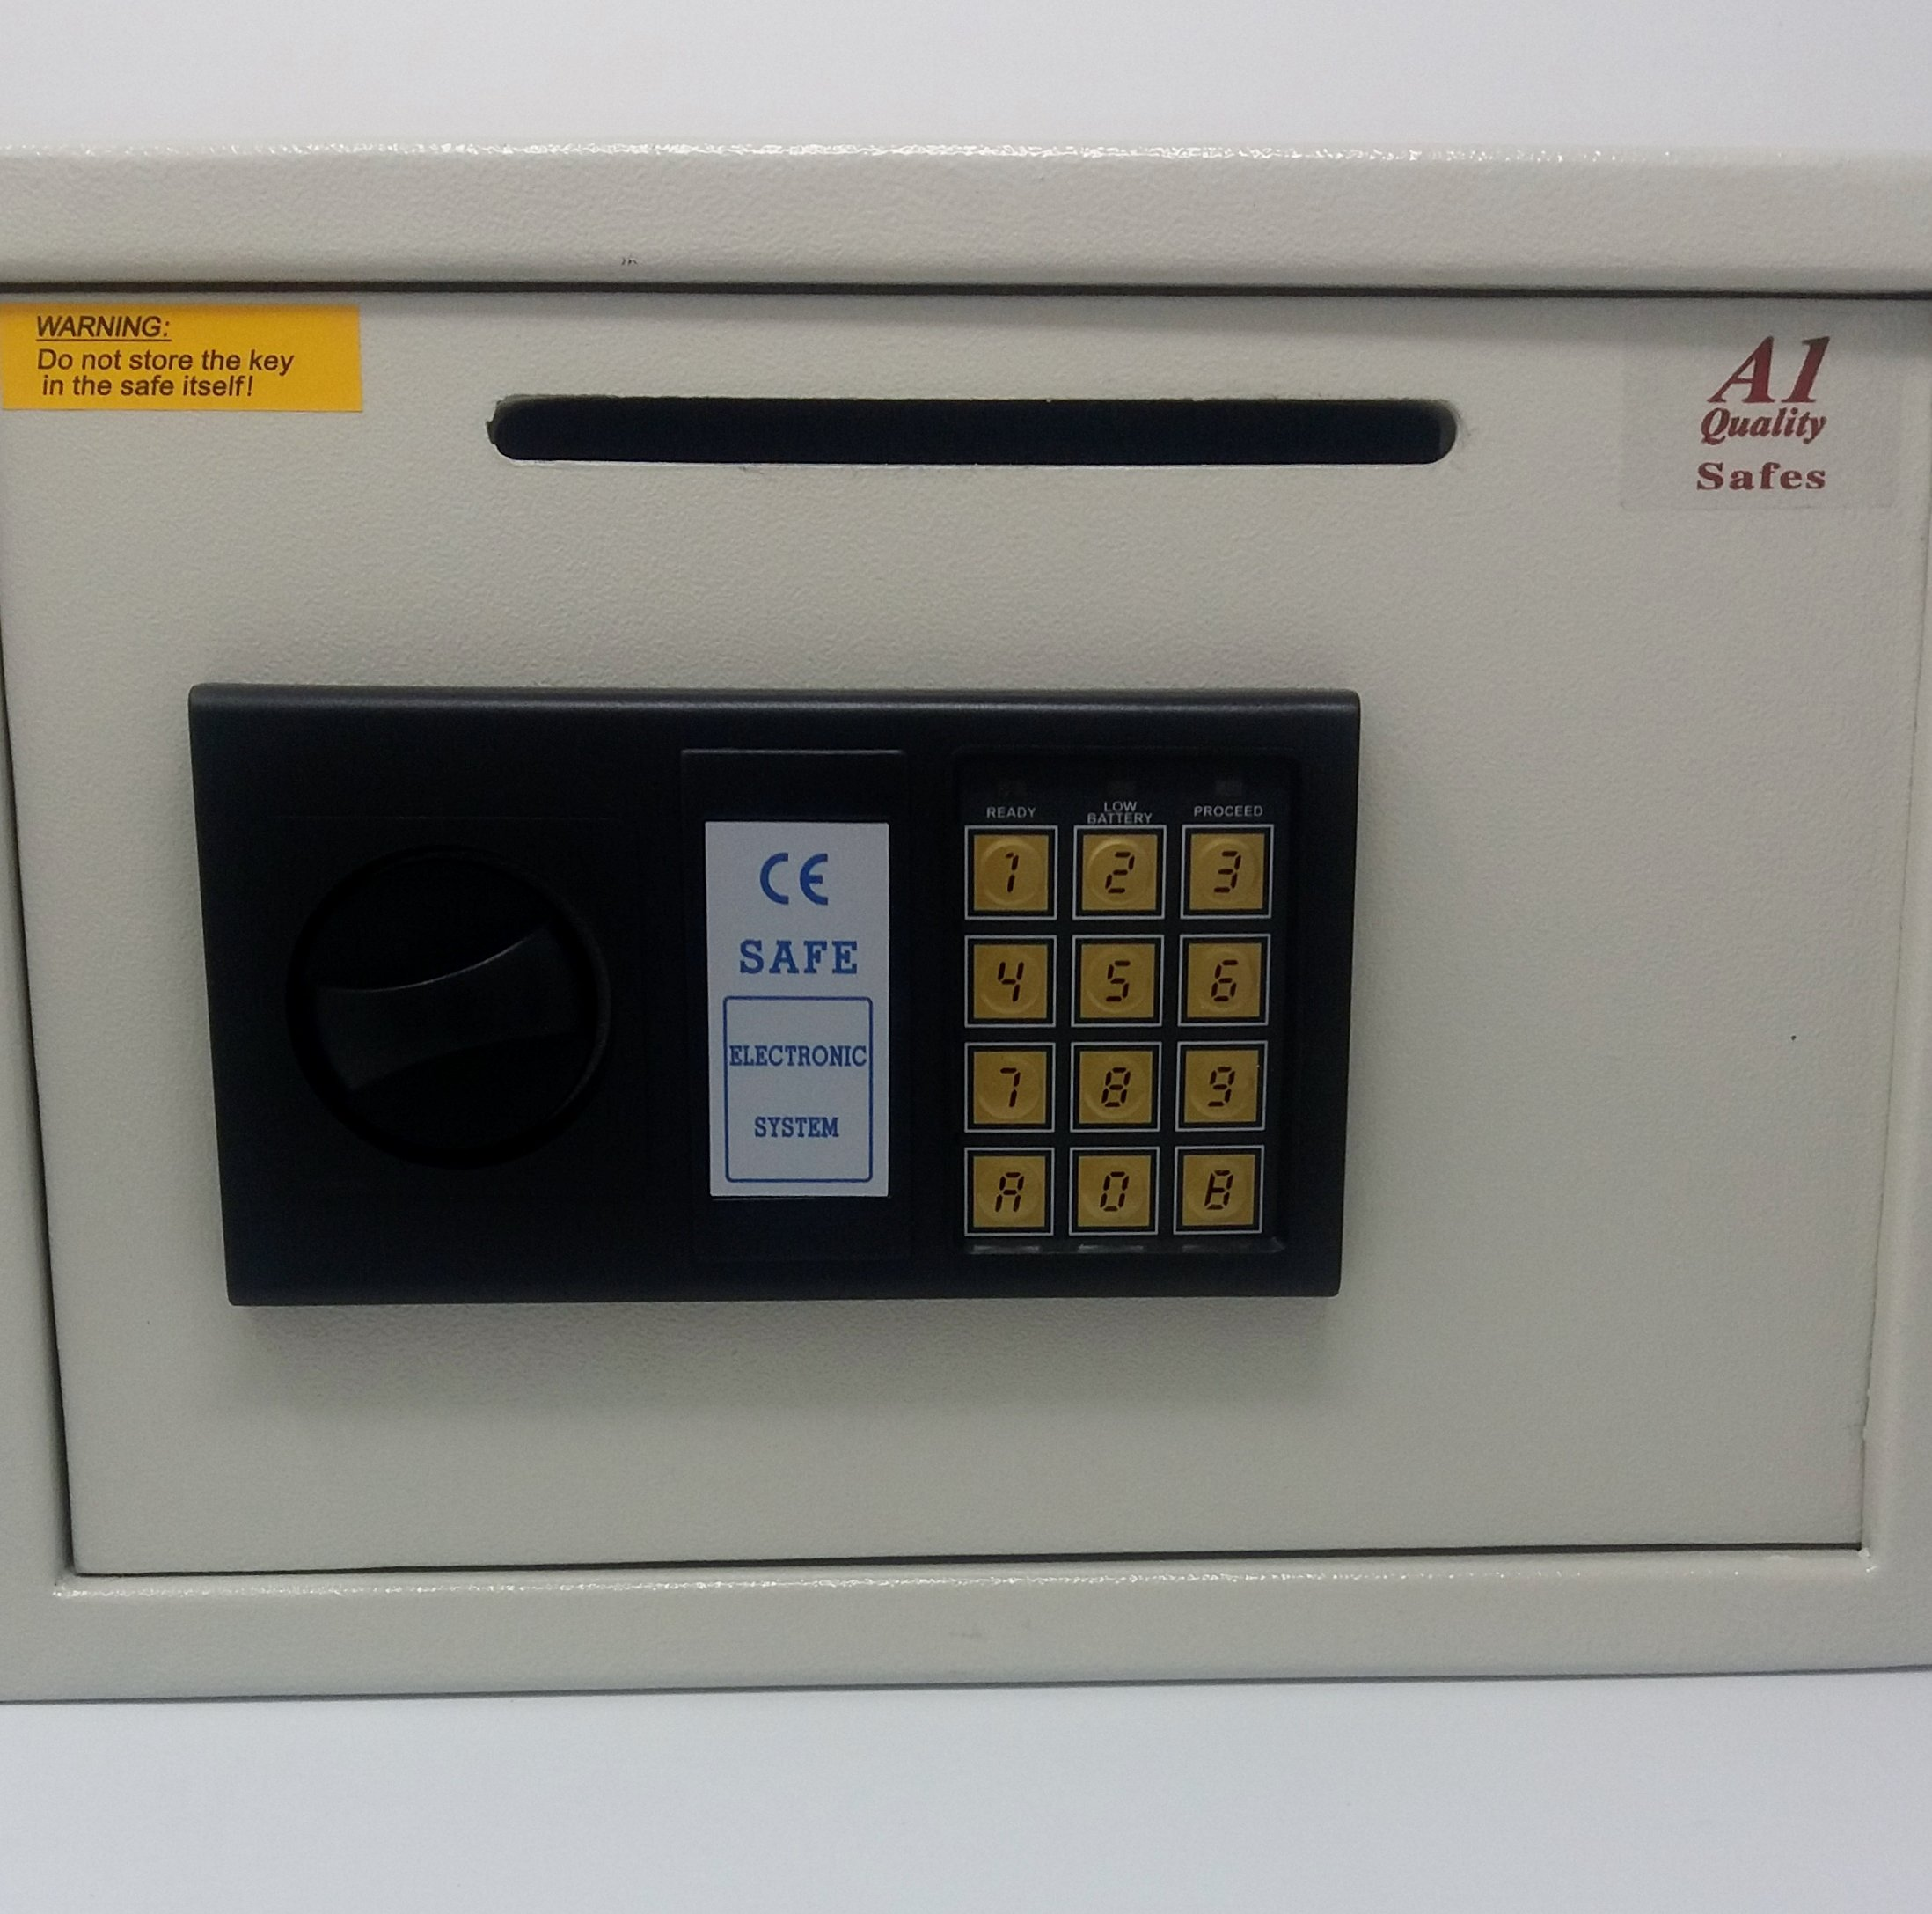 Depository Safe LED Display Electronic Lock Drop Safe by A1 Quality Safes